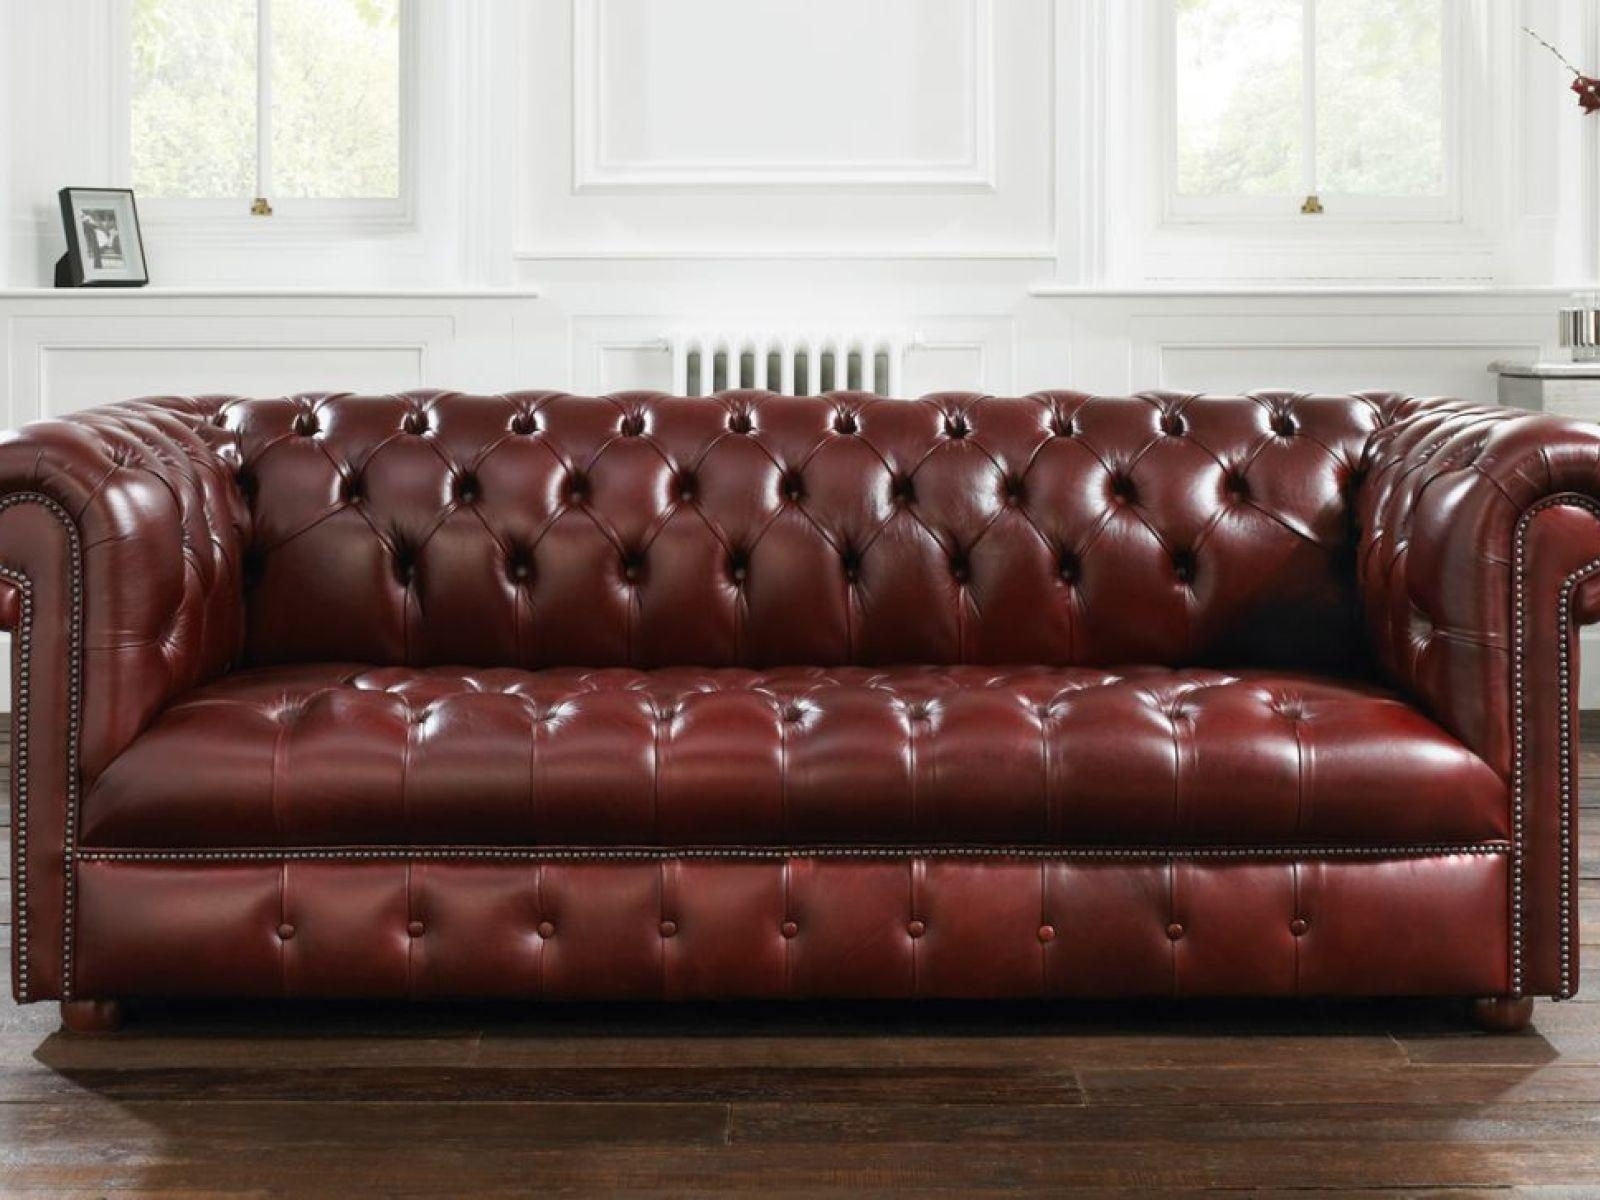 Sofas : Magnificent Blue Chesterfield Sofa Black Leather Tufted With Chesterfield Black Sofas (View 18 of 20)